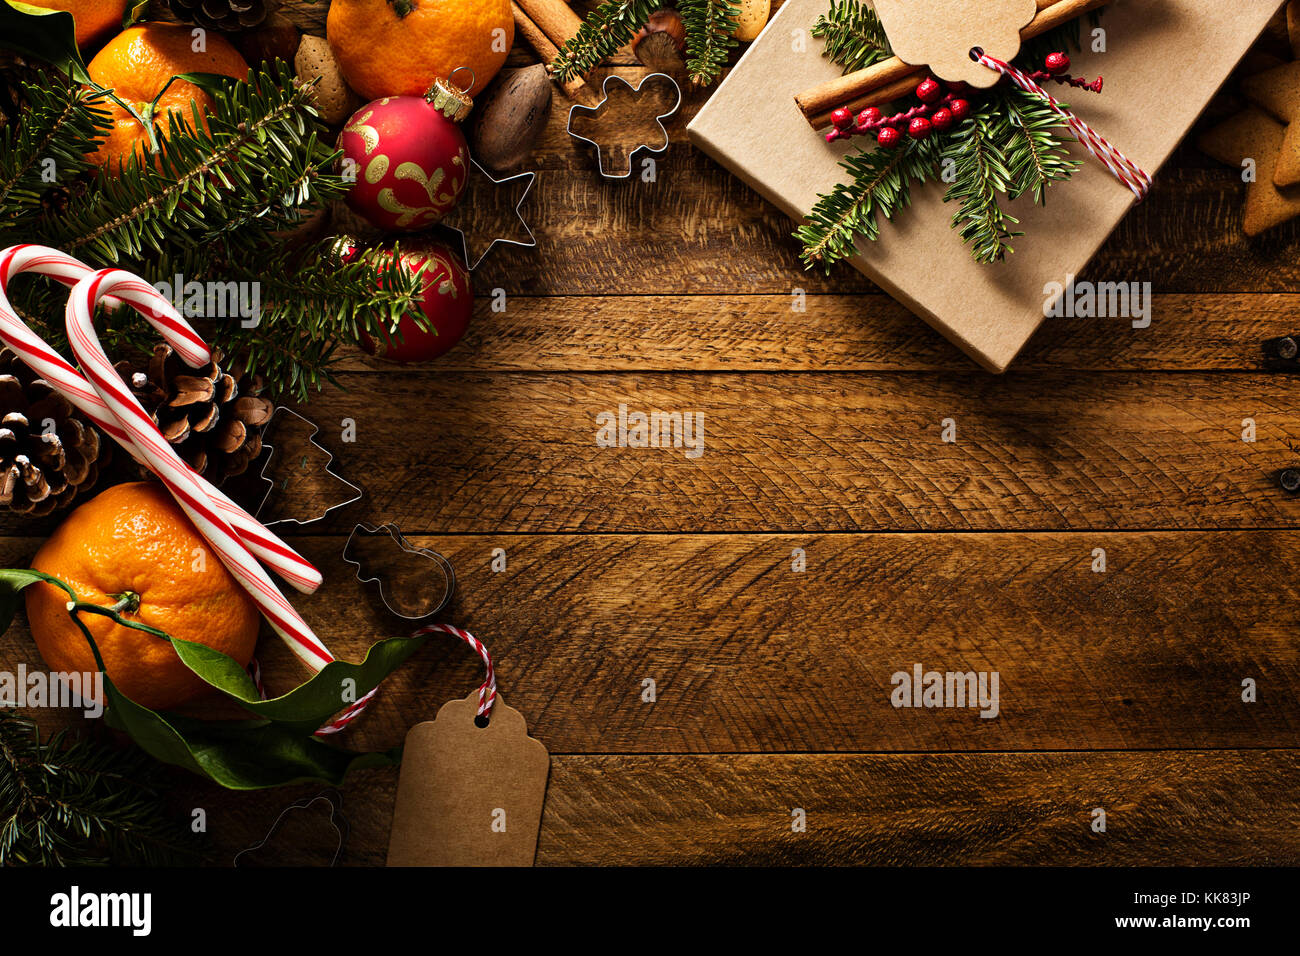 Christmas background with oranges, candy canes and decorations - Stock Image